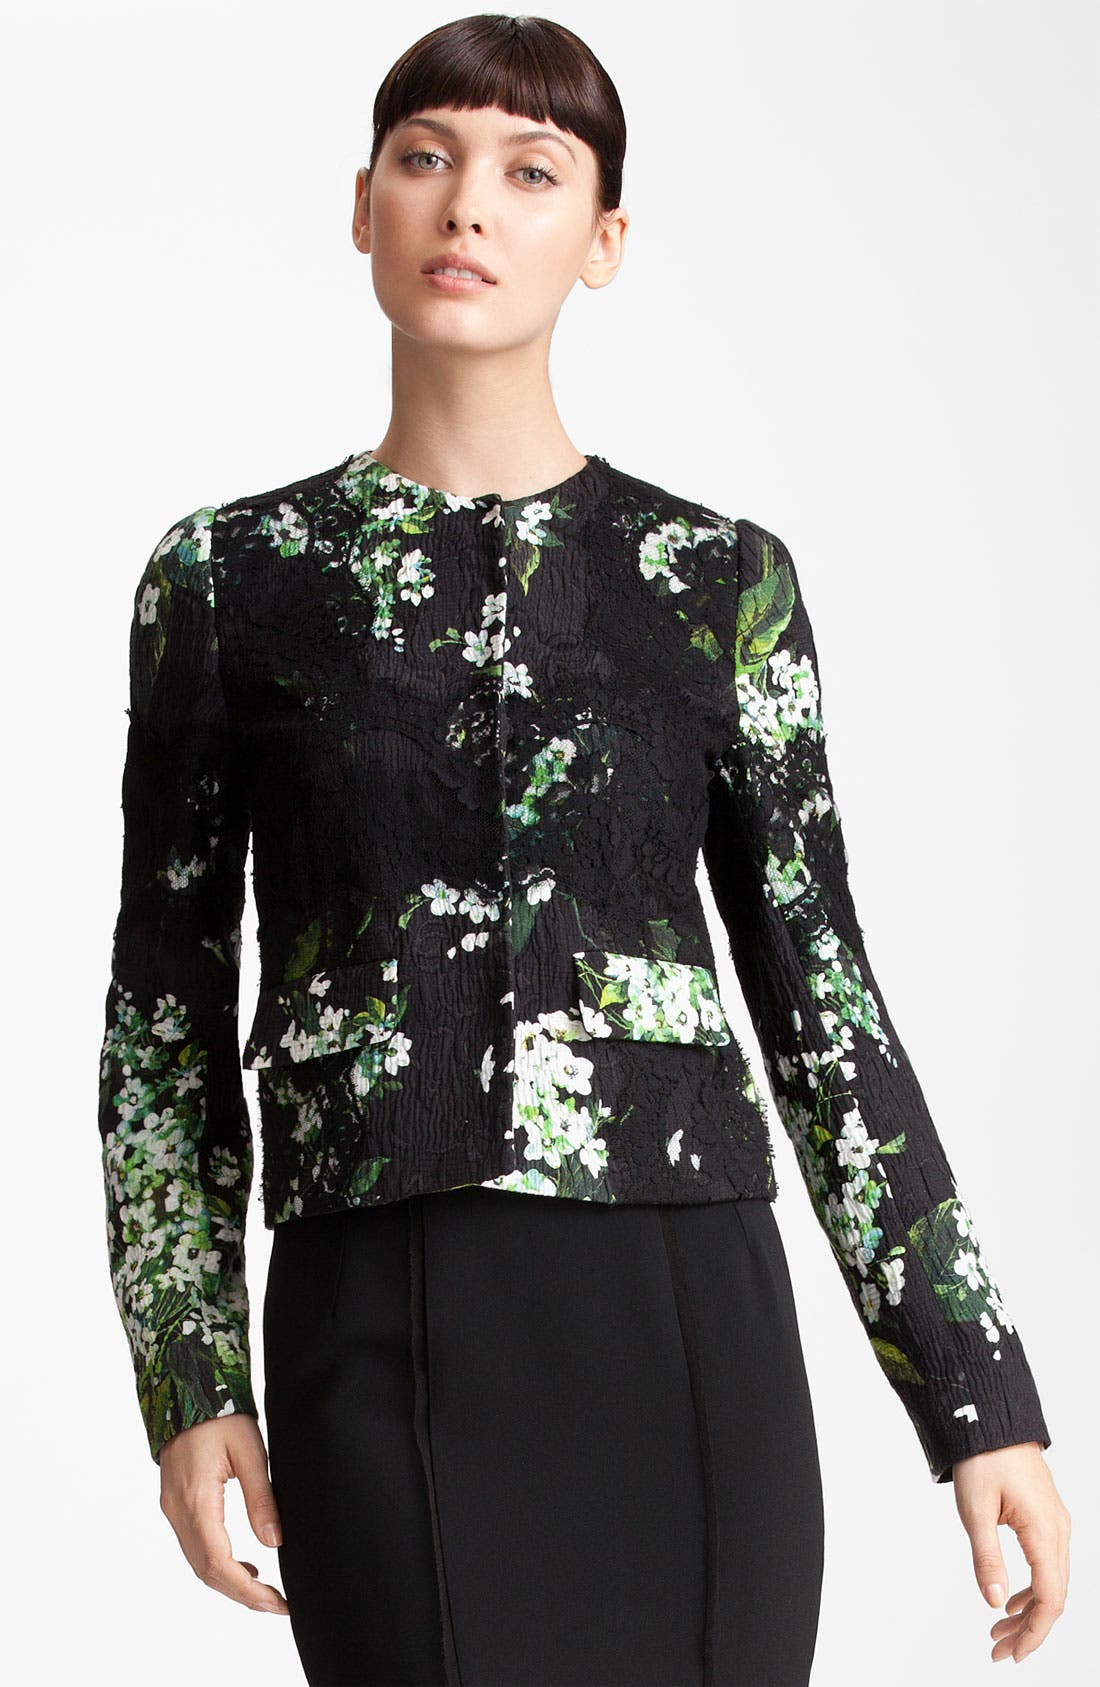 Alternate Image 1 Selected - Dolce&Gabbana Lily Print & Lace Detail Brocade Jacket